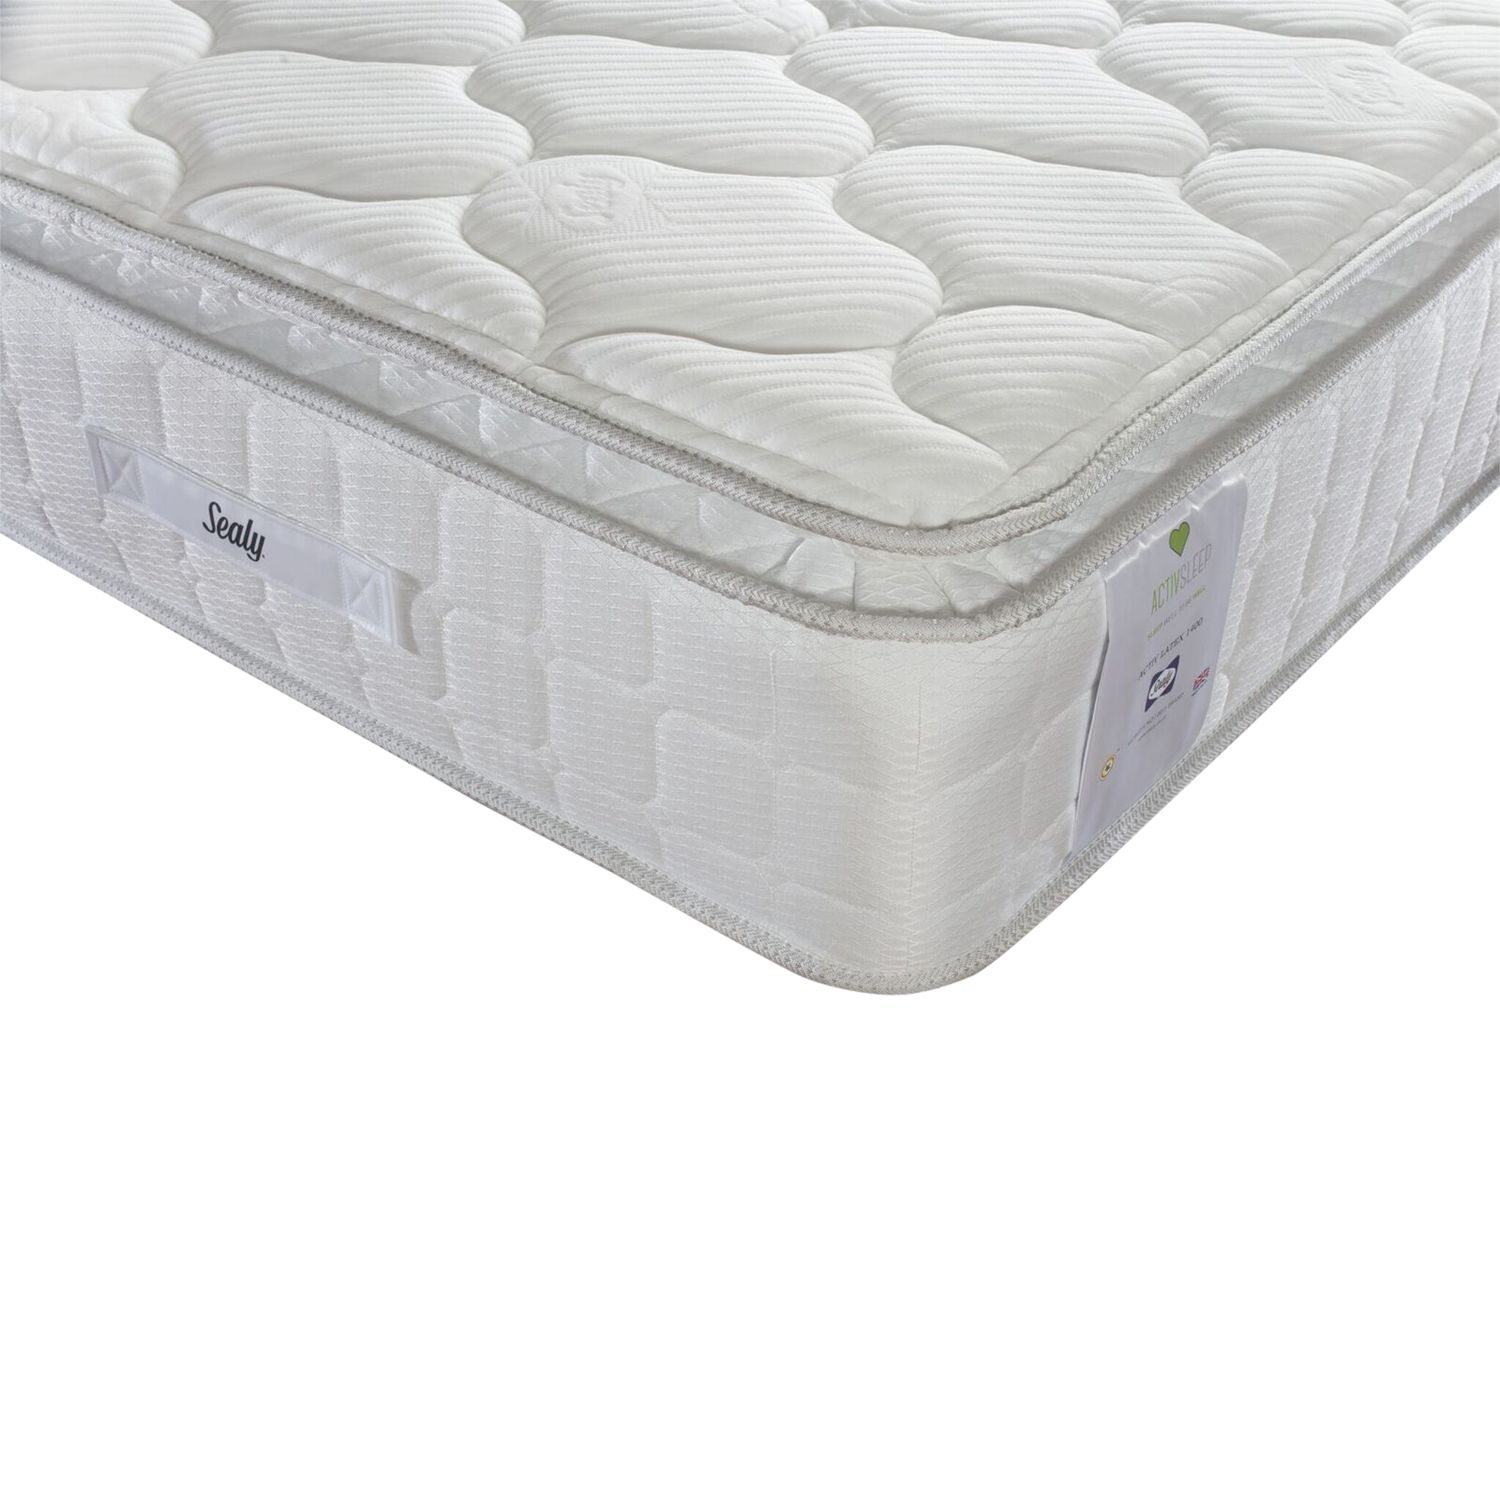 Sealy Sealy Activsleep Latex 1400 Pocket Spring Mattress, Medium, Single